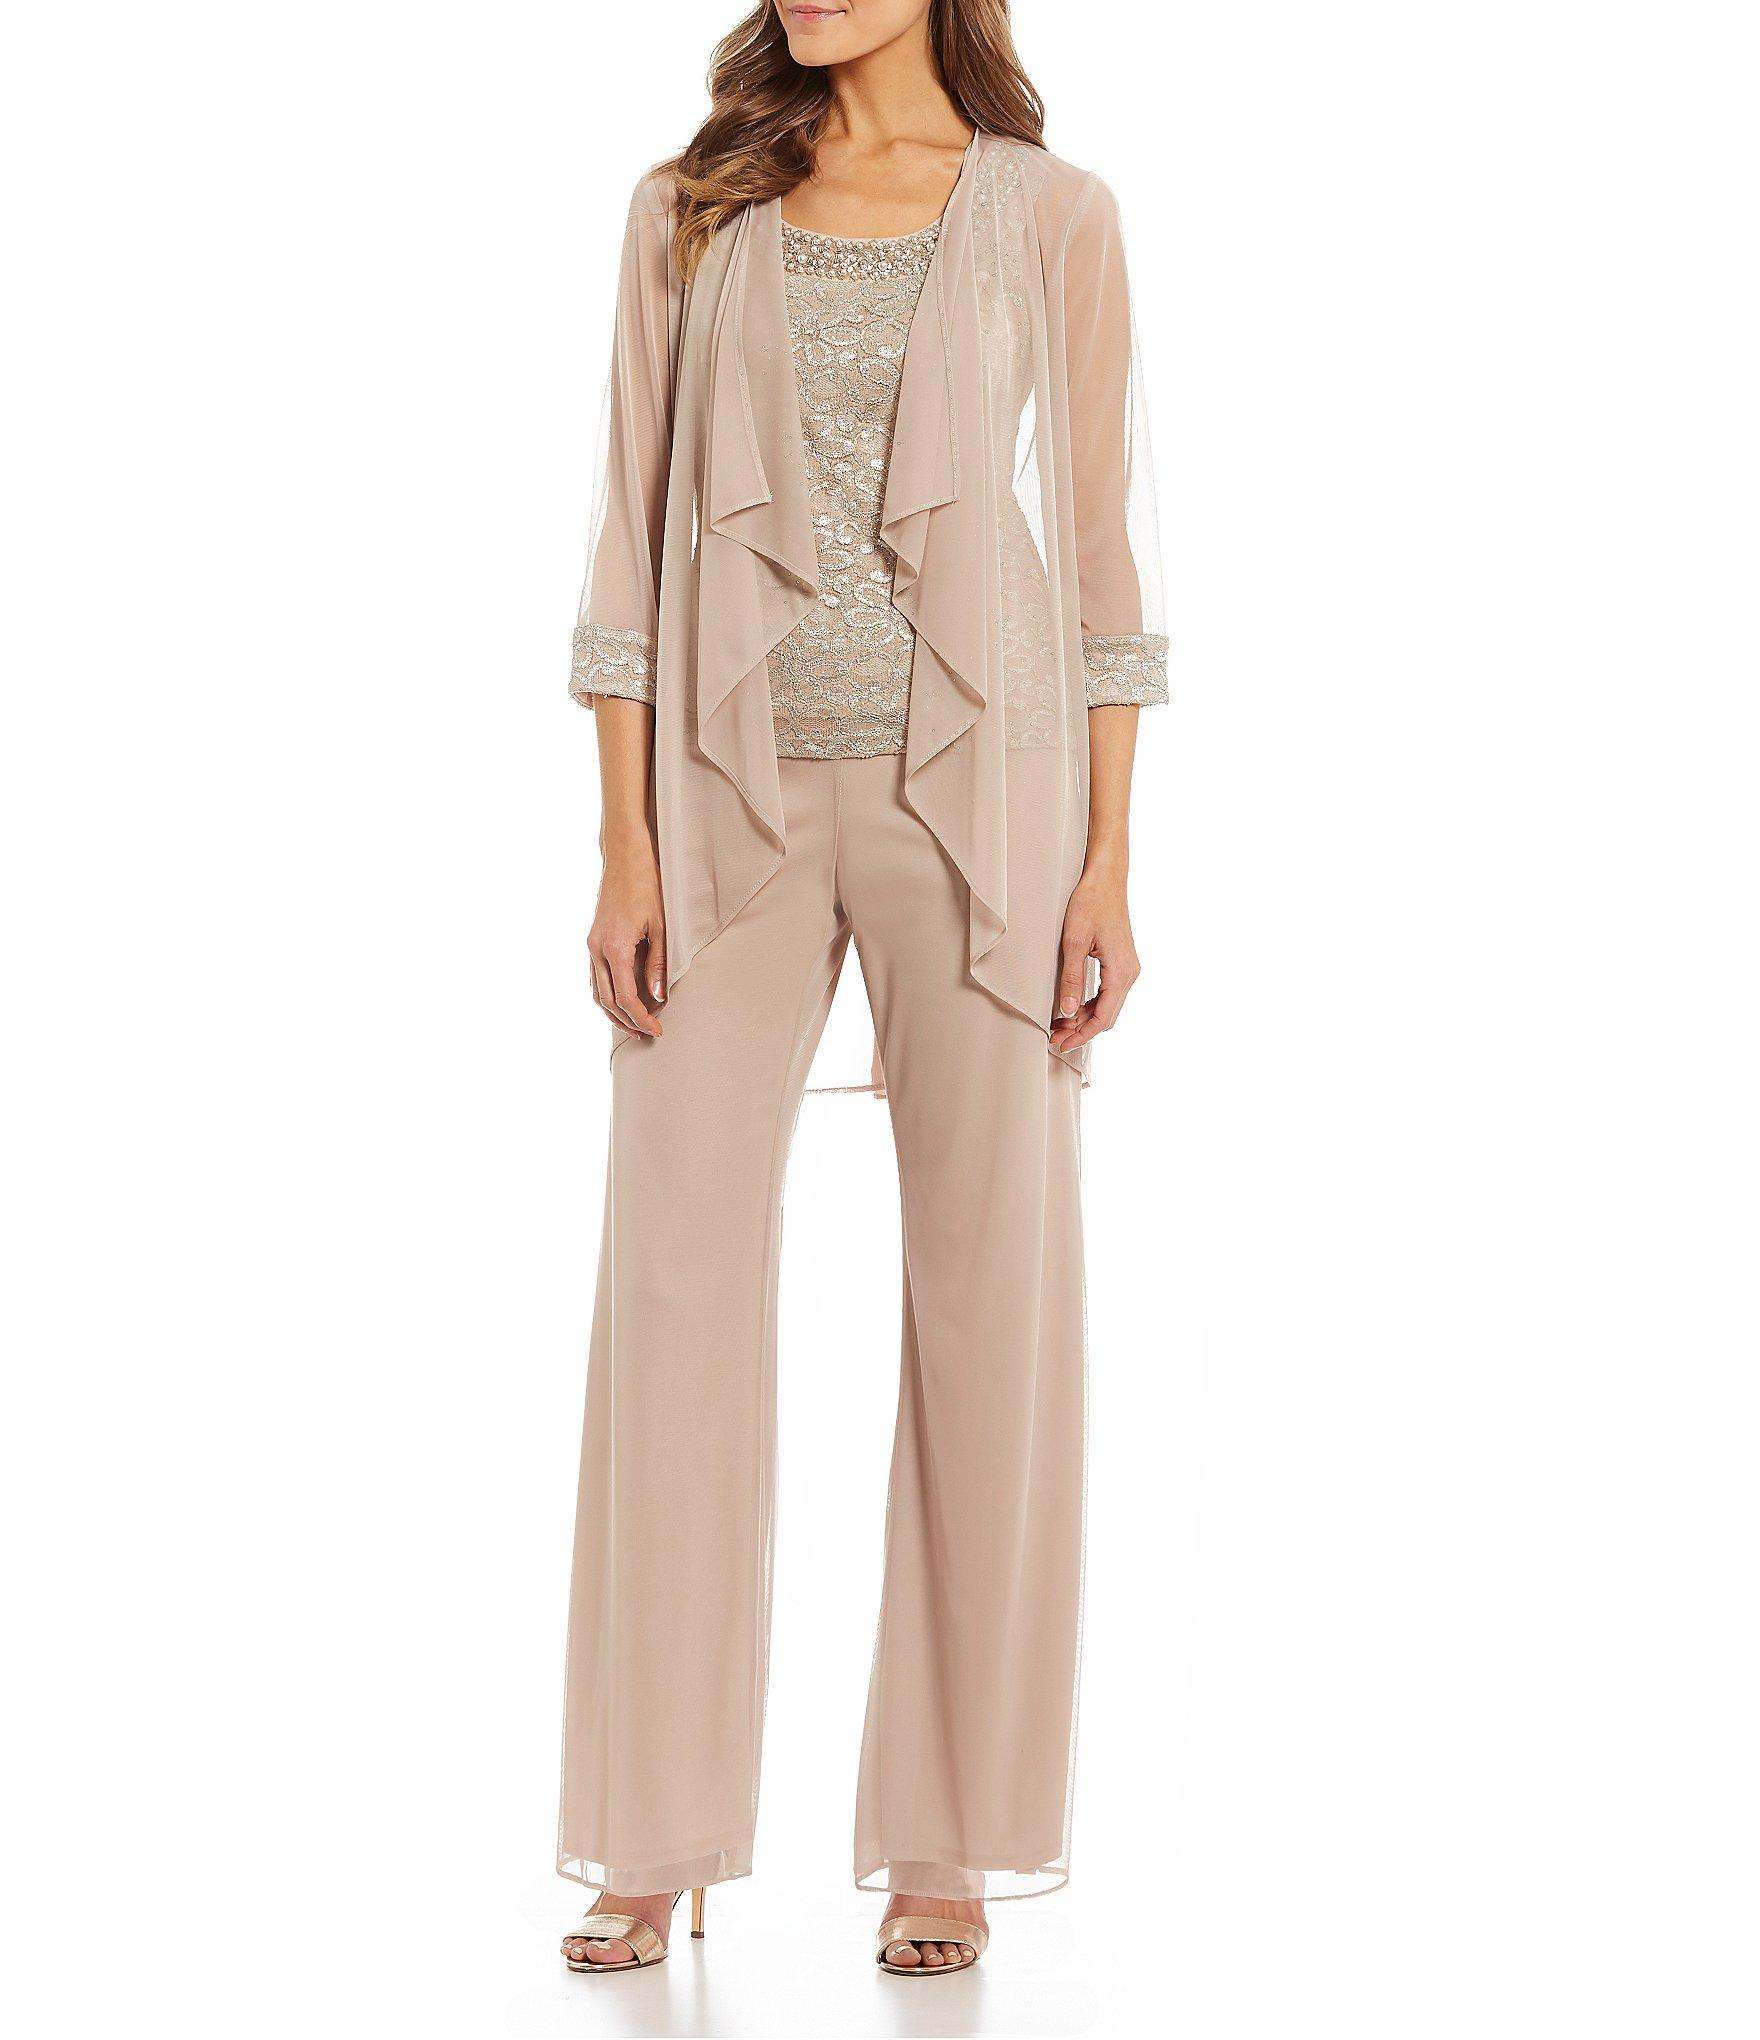 9719a2ddfa1 R   M Richards 3-piece Glitter Lace Flyaway Pant Set in Natural - Lyst